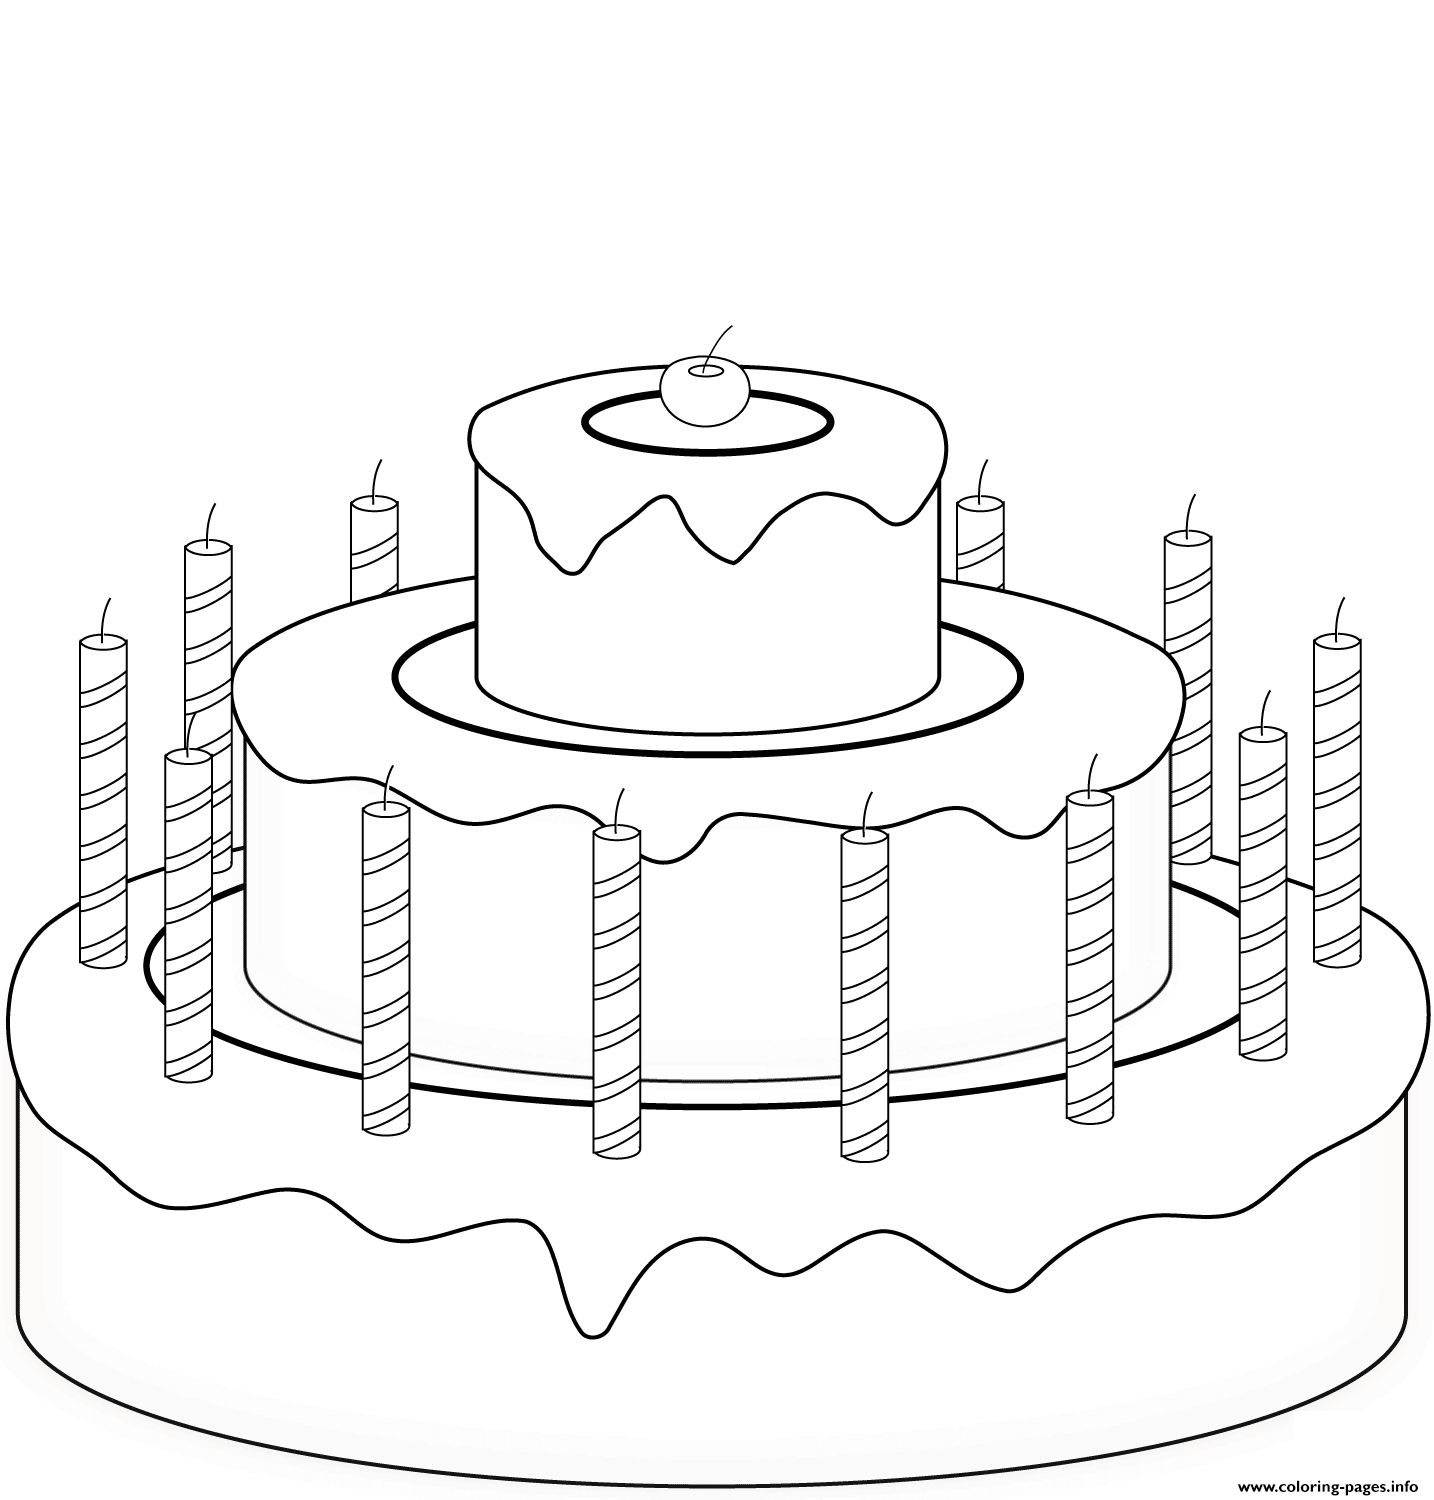 minecraft cake coloring pages birthday cake with cherry coloring pages printable coloring minecraft pages cake